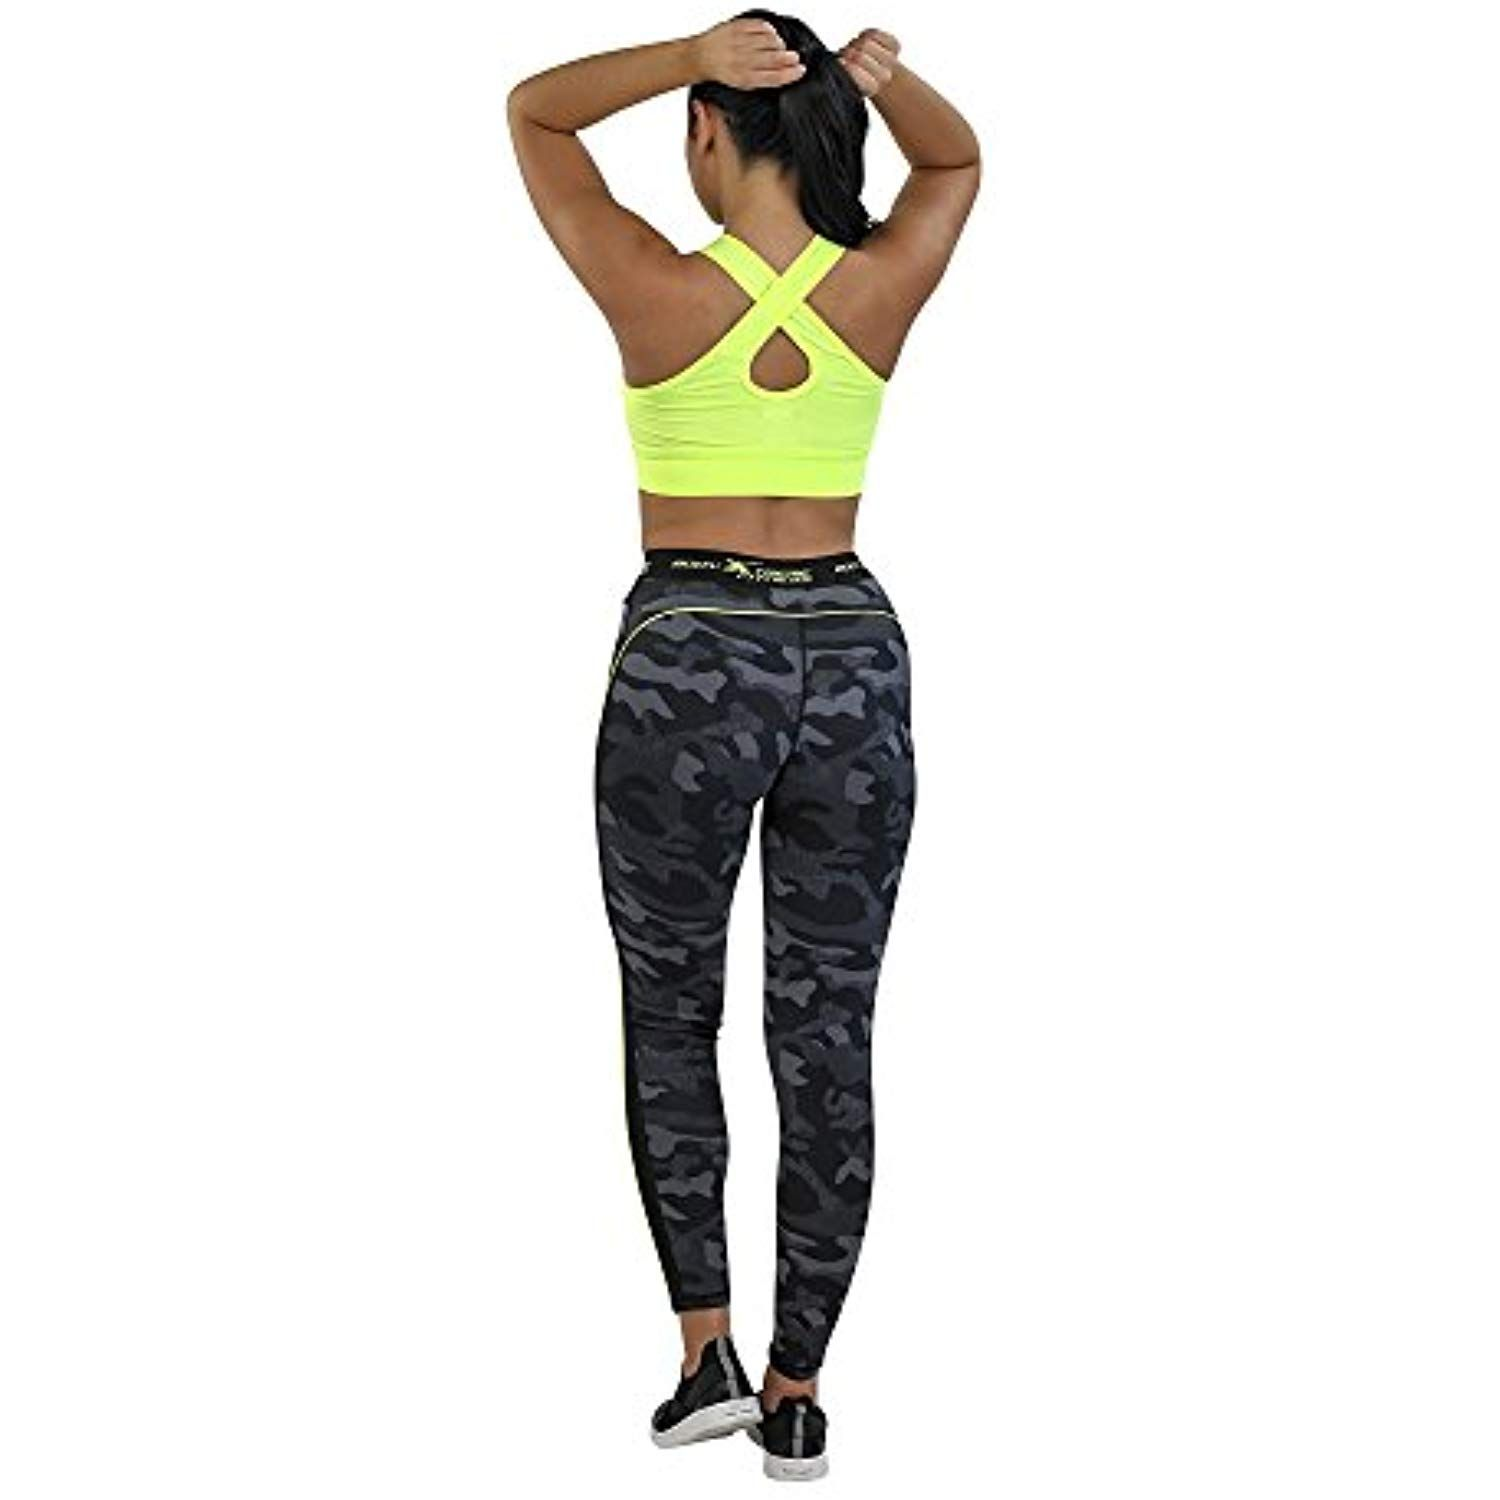 Body Xtreme Fitness Full Length Leggings and Neon